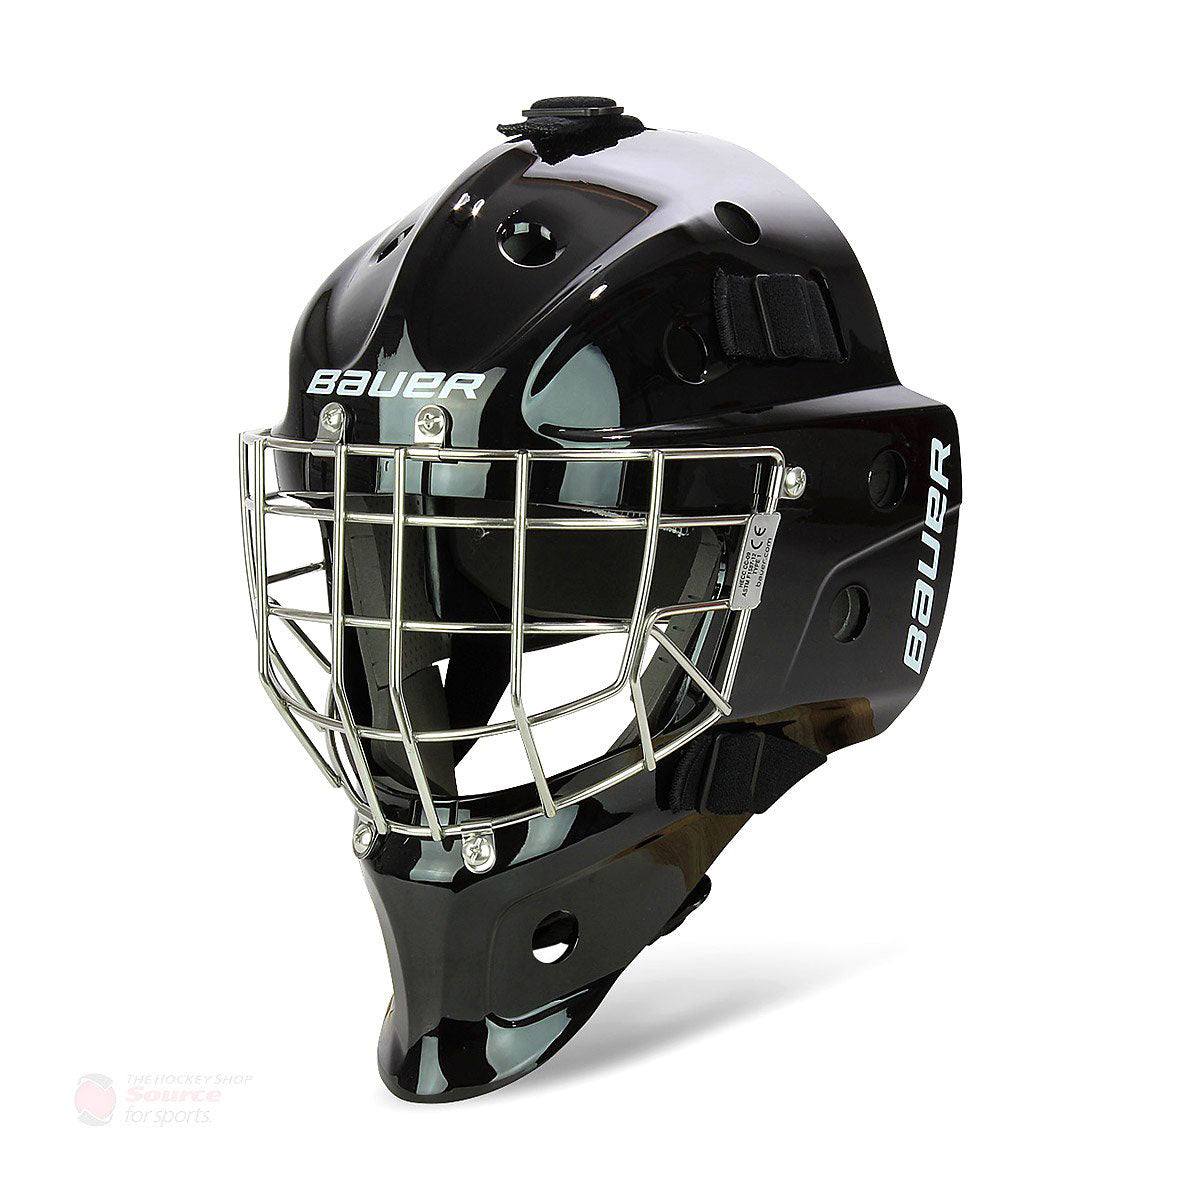 Bauer Profile 940X Senior Goalie Mask